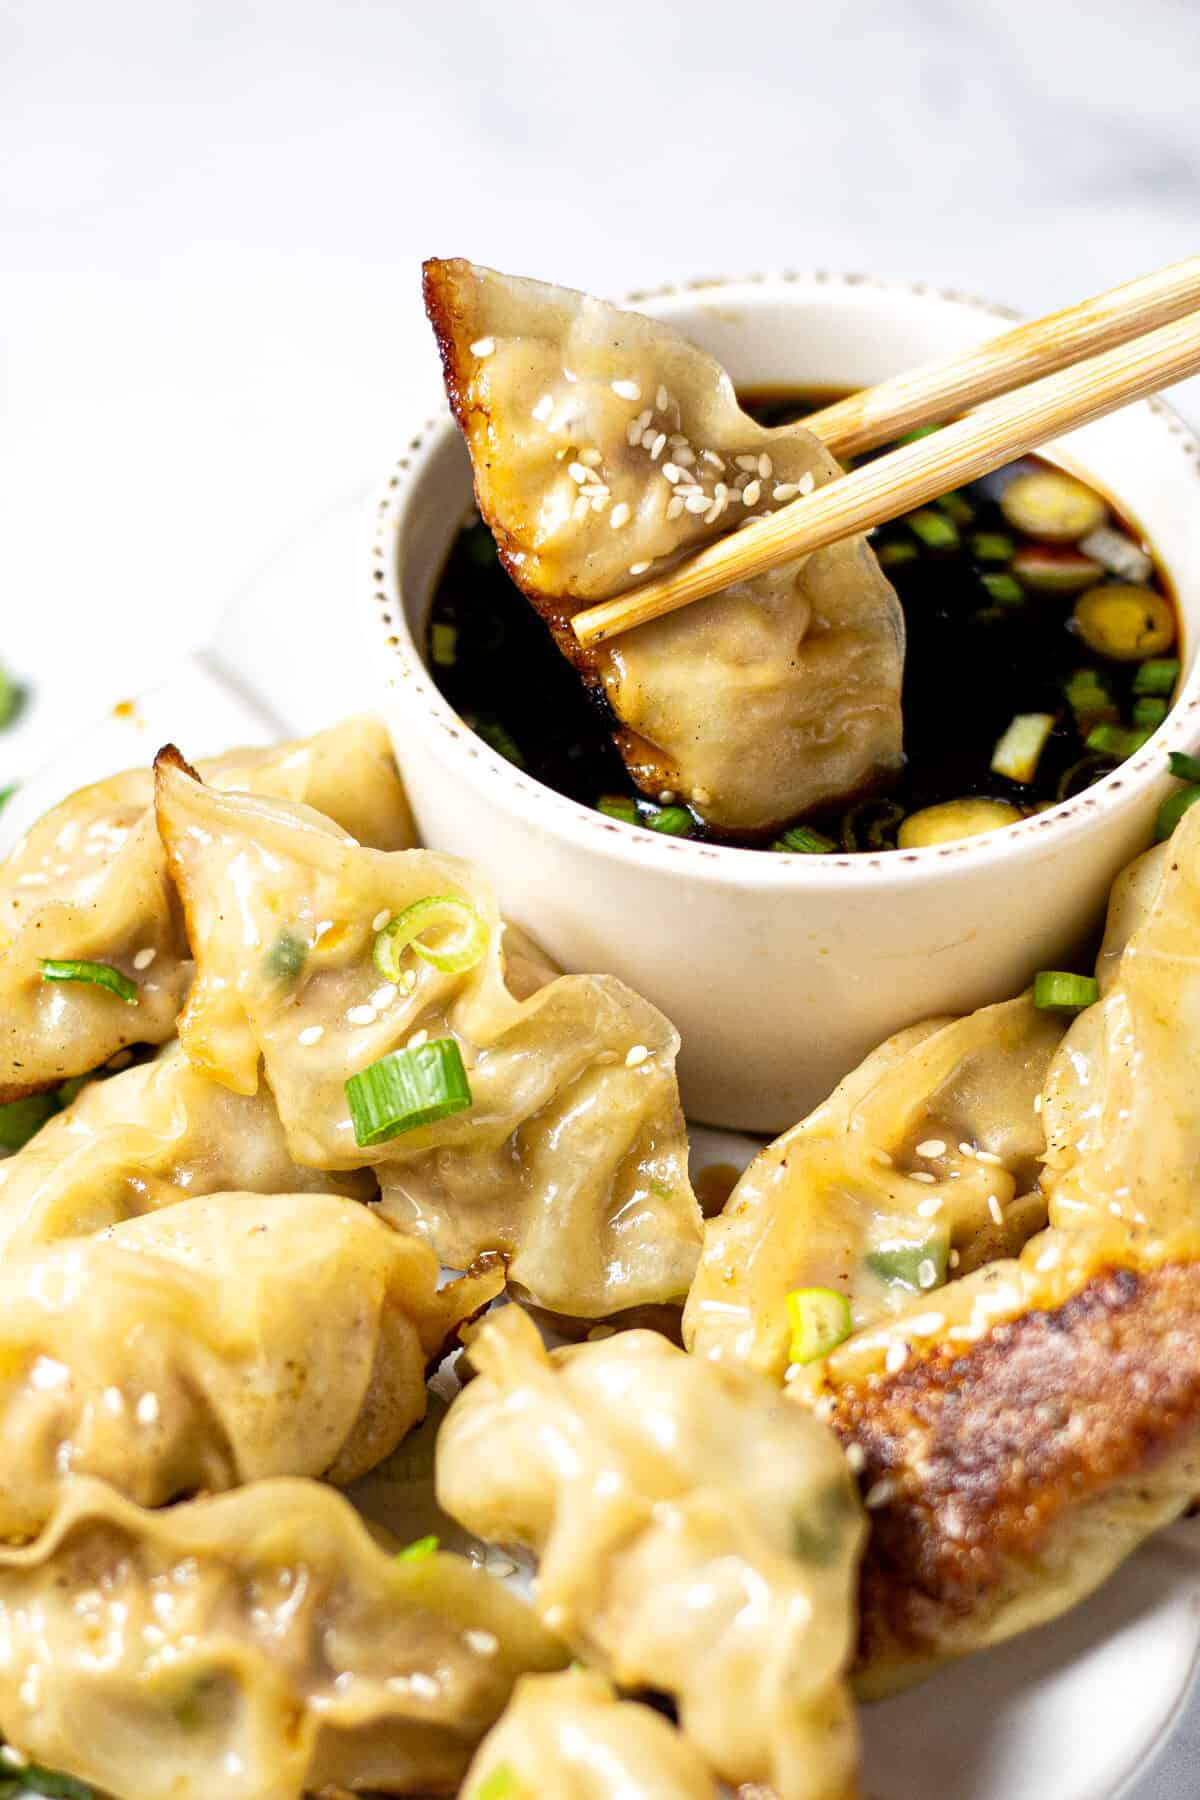 Close up shot of a pork dumpling being dipped in soy sauce with chopsticks